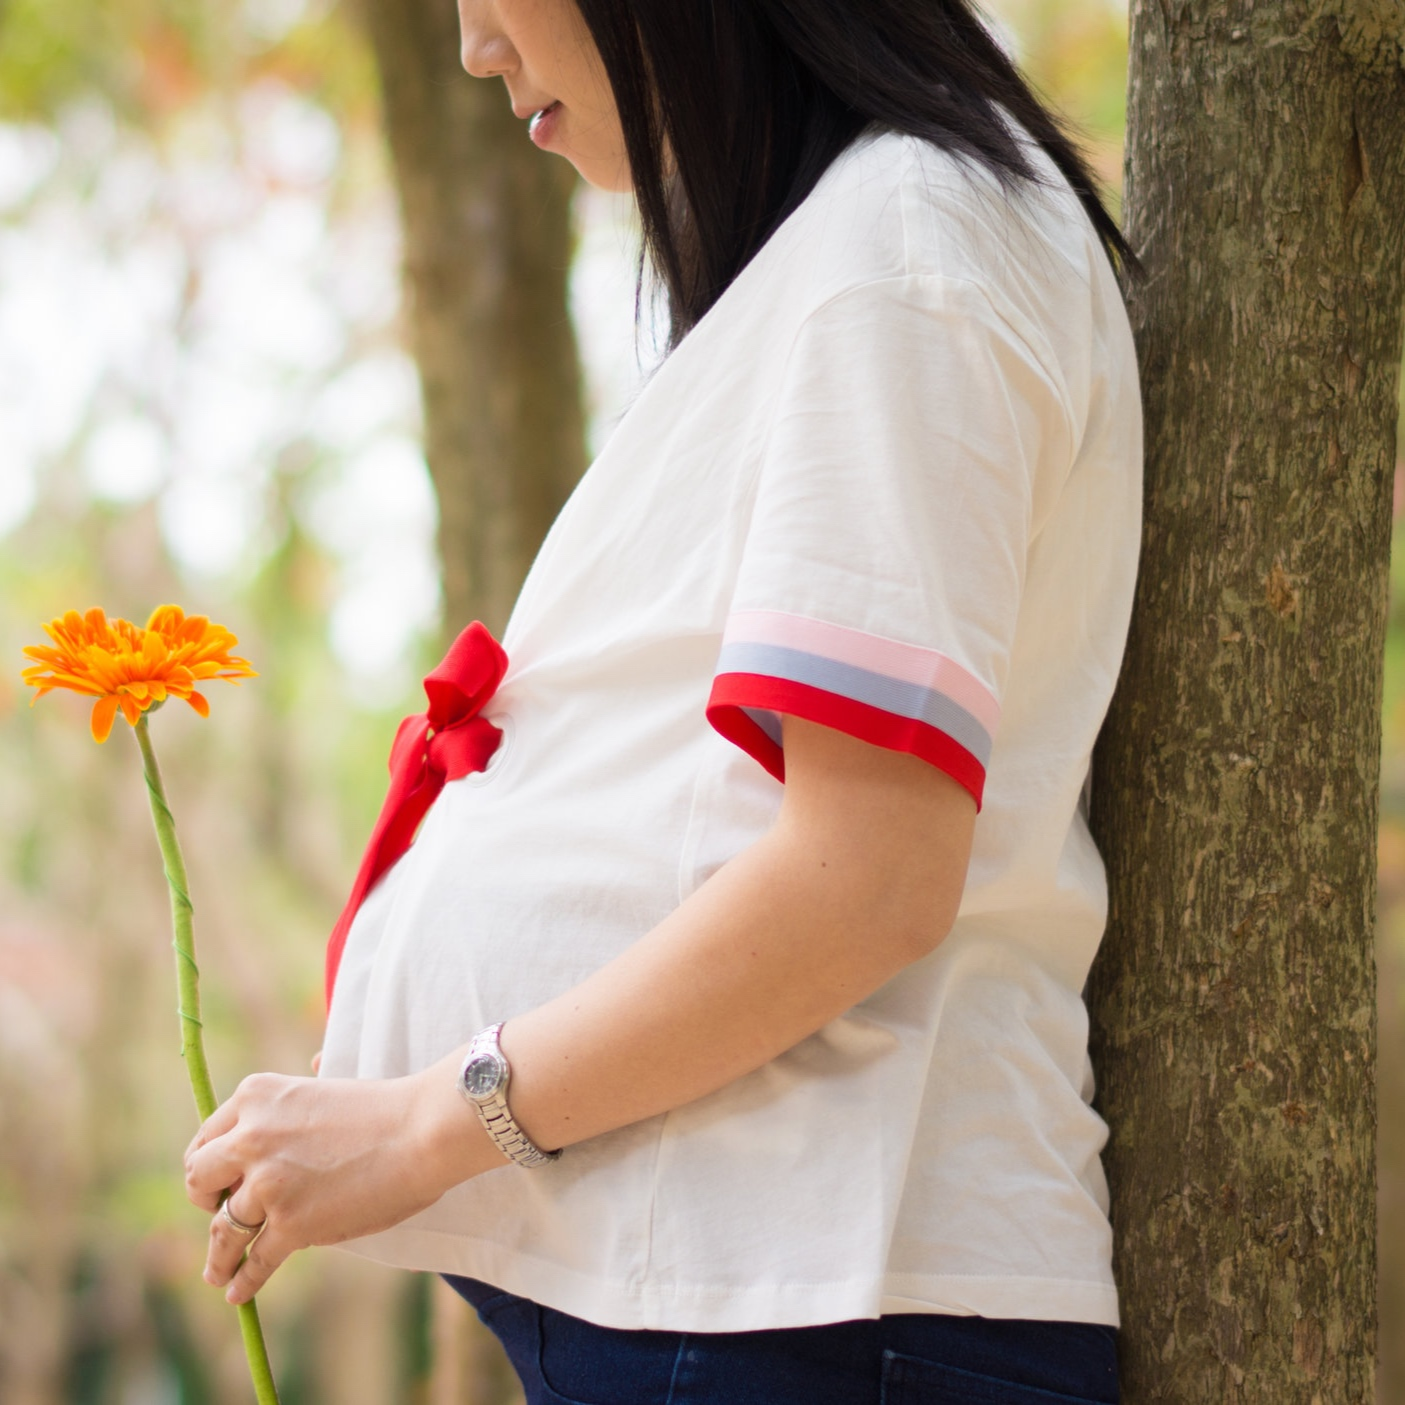 Grieving While Pregnant: Free Workshop - Resilient Birth7:00pm -9:00 pm Thursday April 18Location: Cobblestones85 River Street Ste 9 2nd Floor Waltham, MA 02453